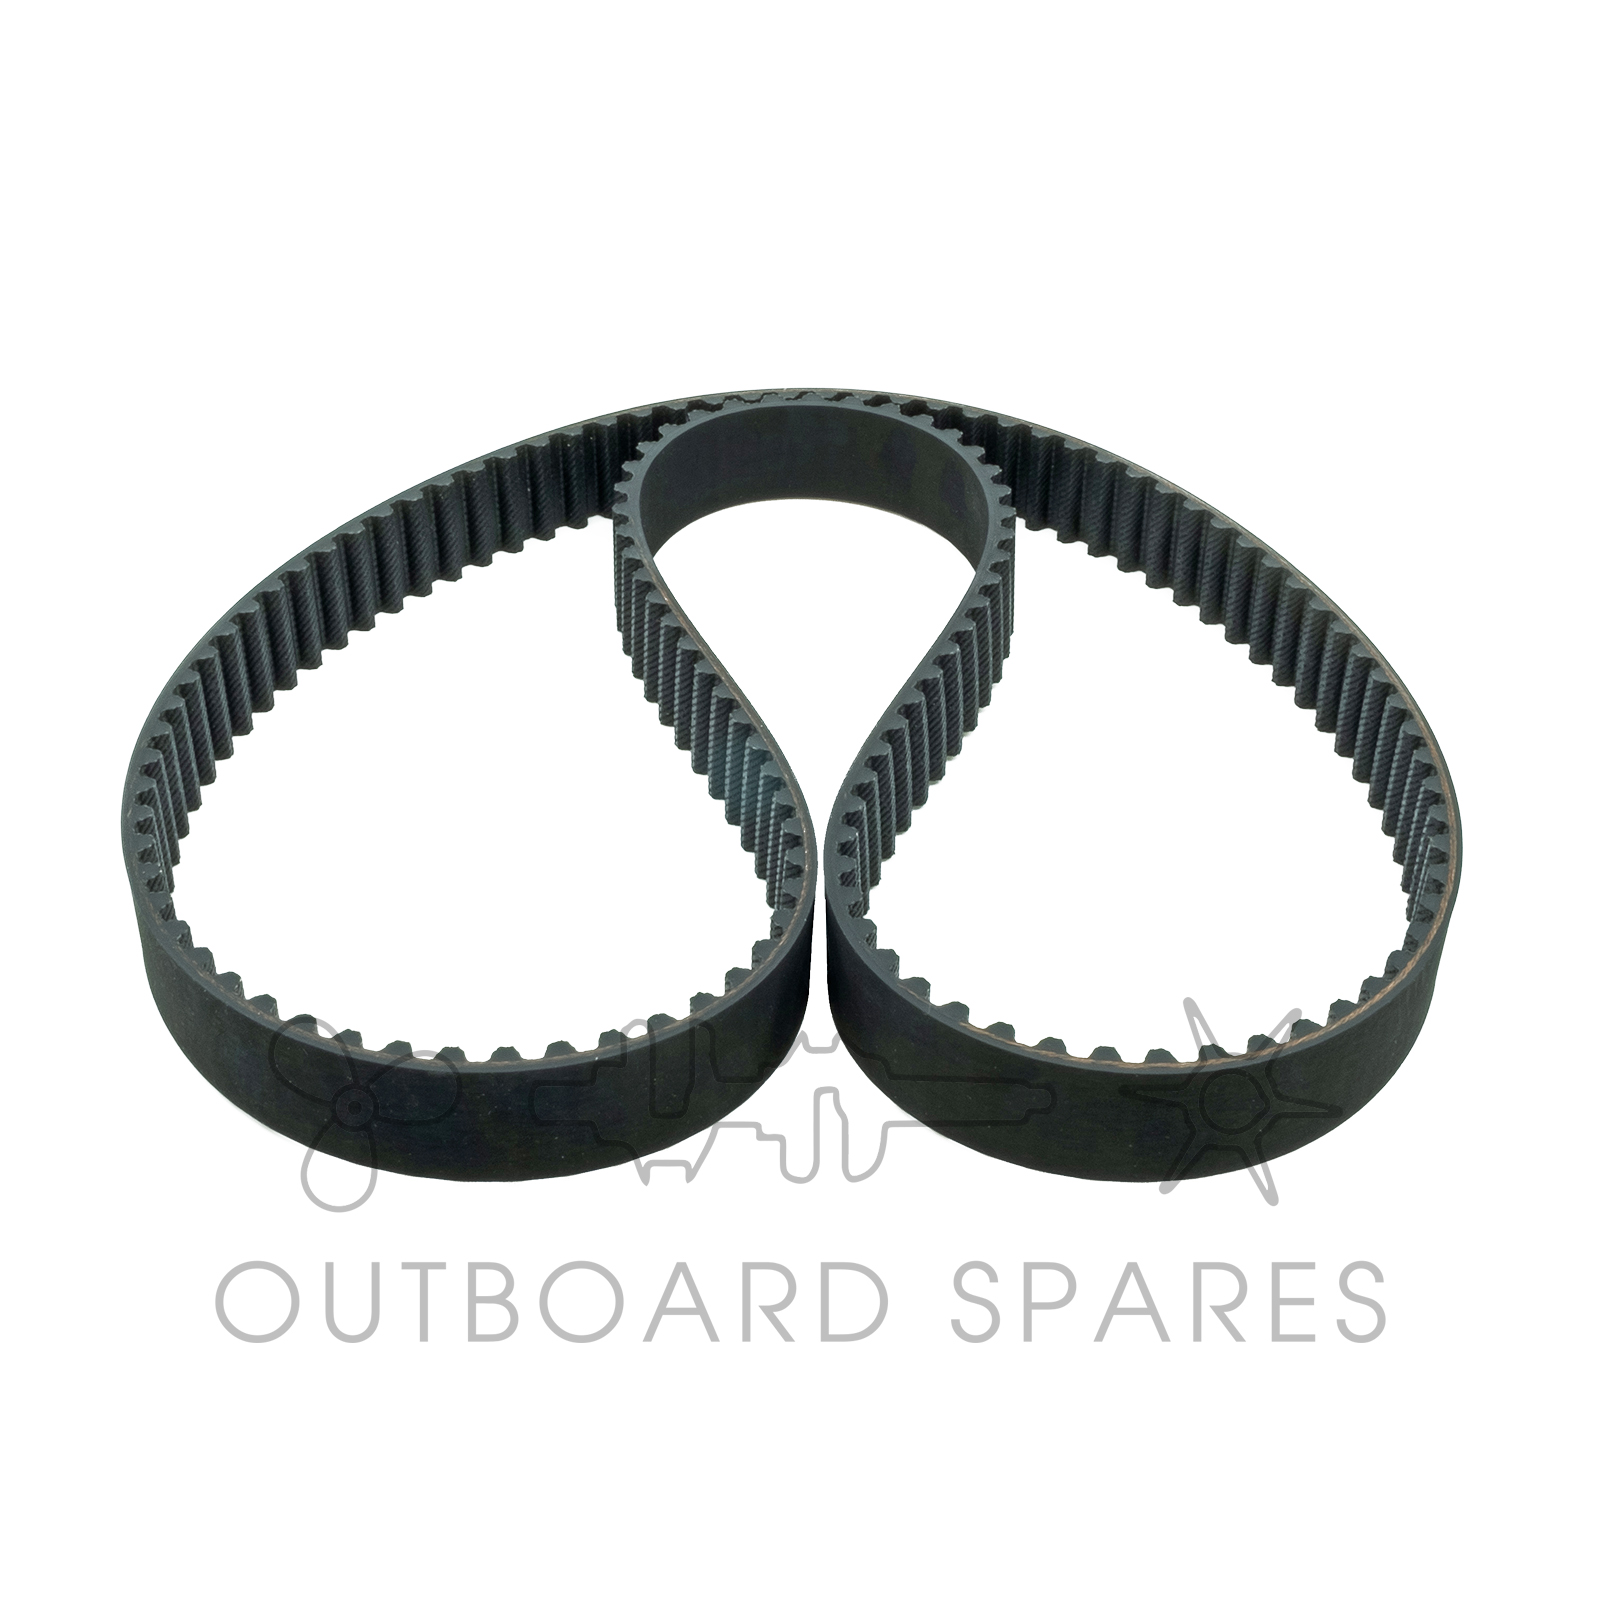 Yamaha 75 115hp Timing Belt Ostb67f Outboard Spares Product